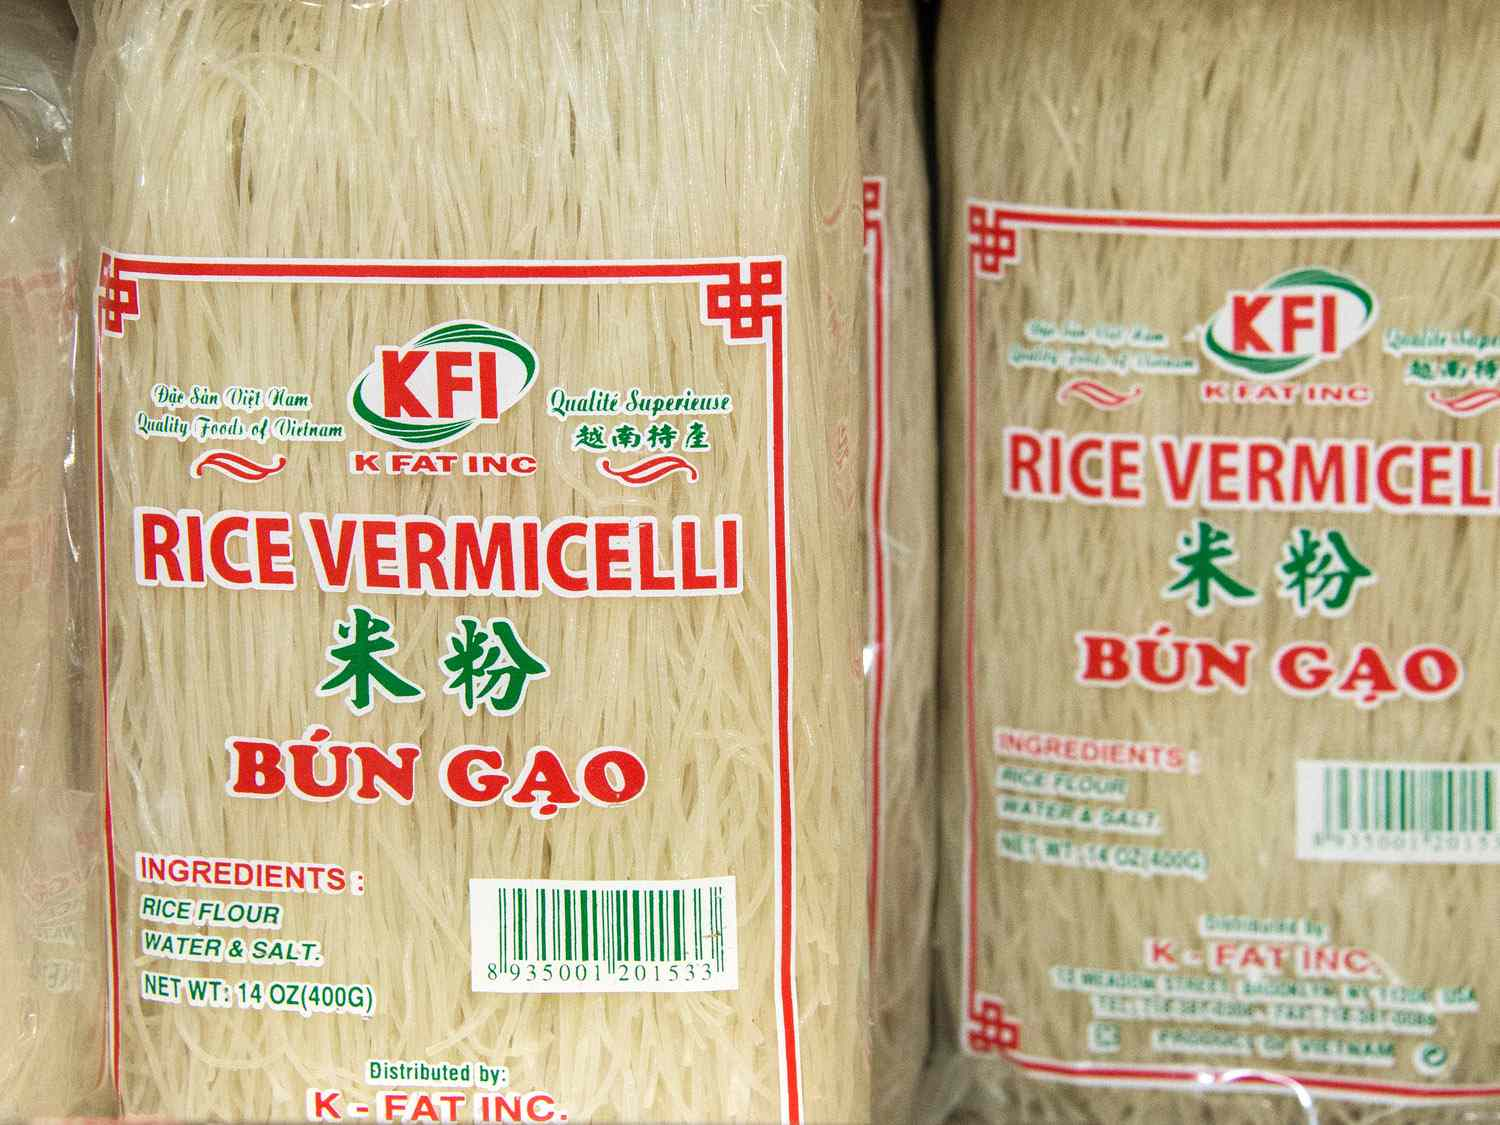 20140724-asian-noodle-guide-rice-vermicelli-kevin-cox-1-edit.jpg